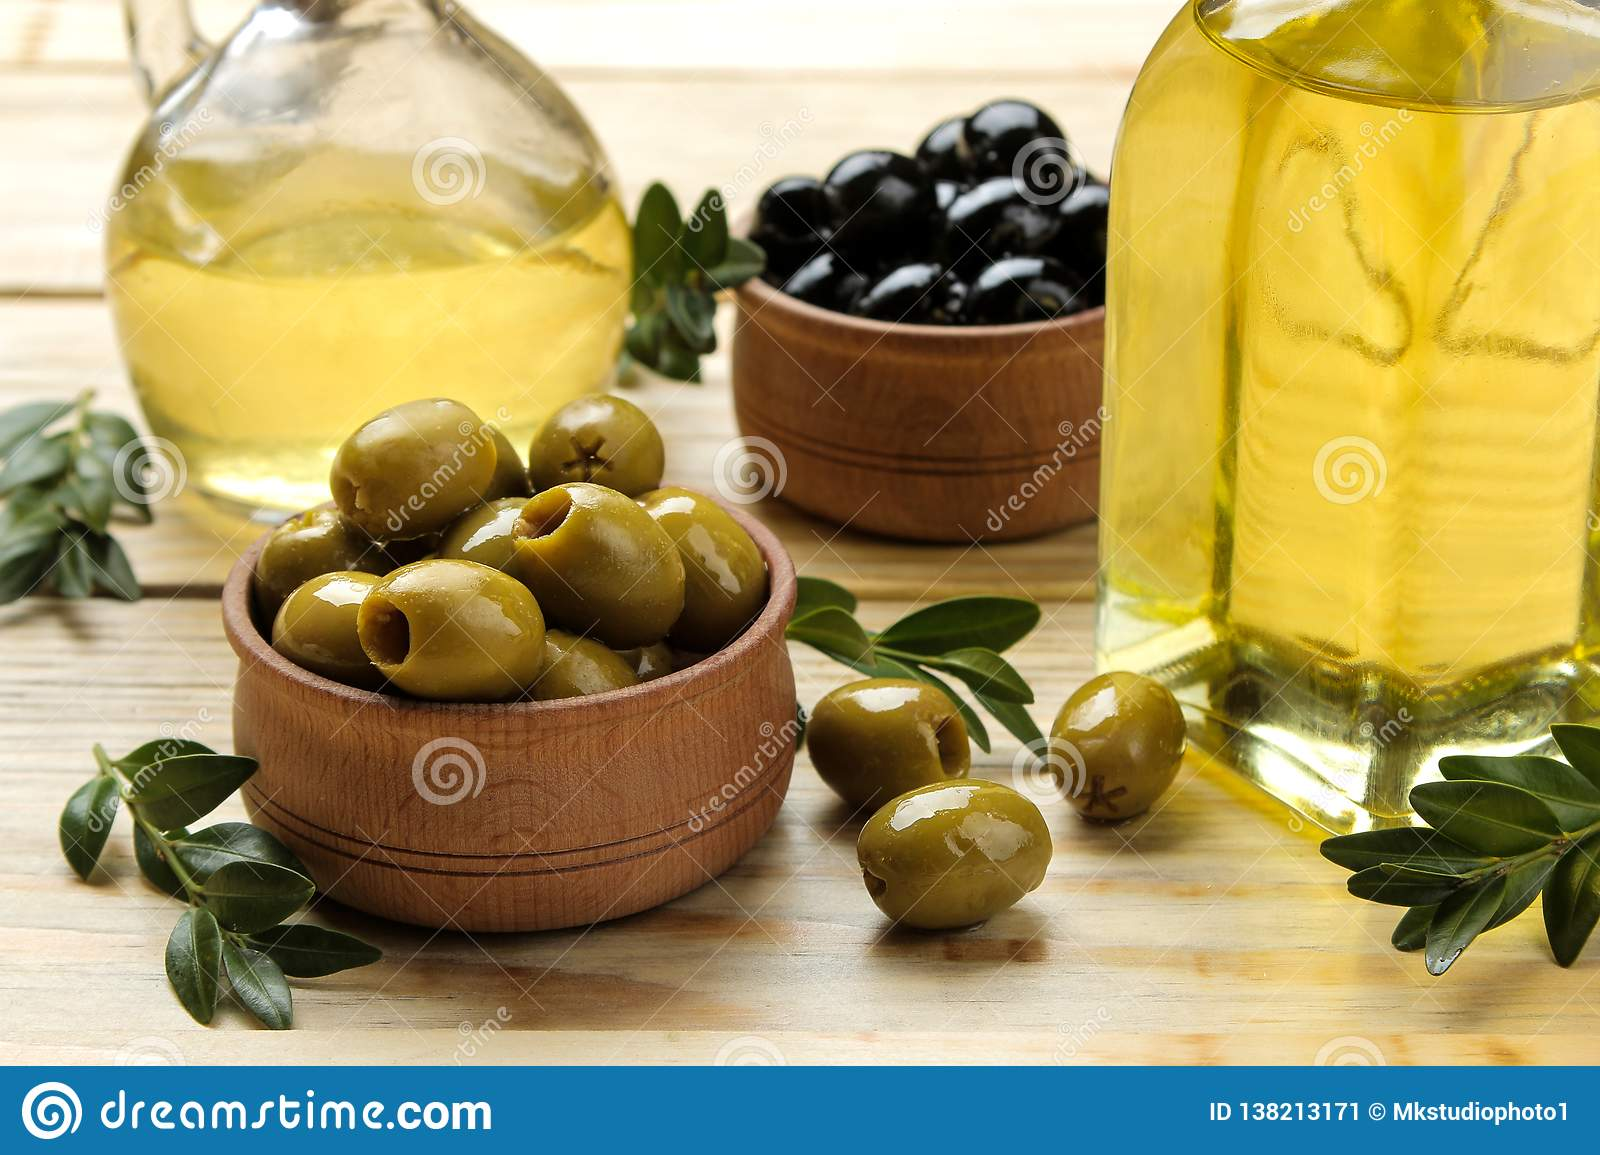 b1d9d15567d4 green and black olives in a wooden bowl with olive oil on a natural wooden  table